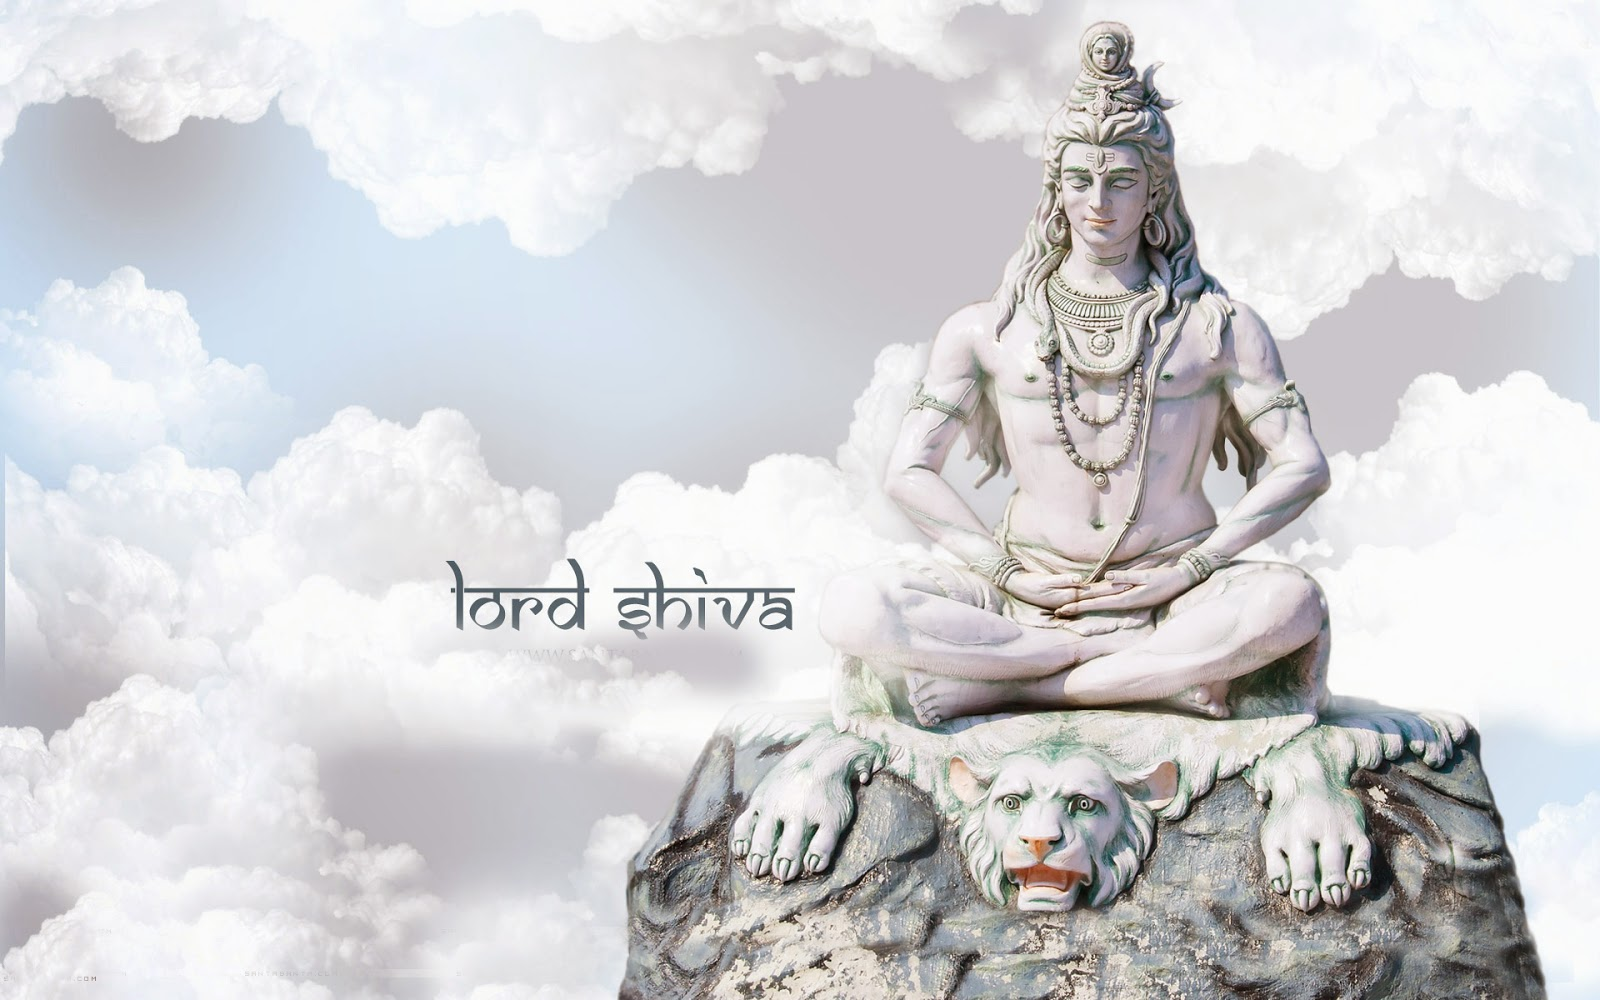 lord shiva images hd